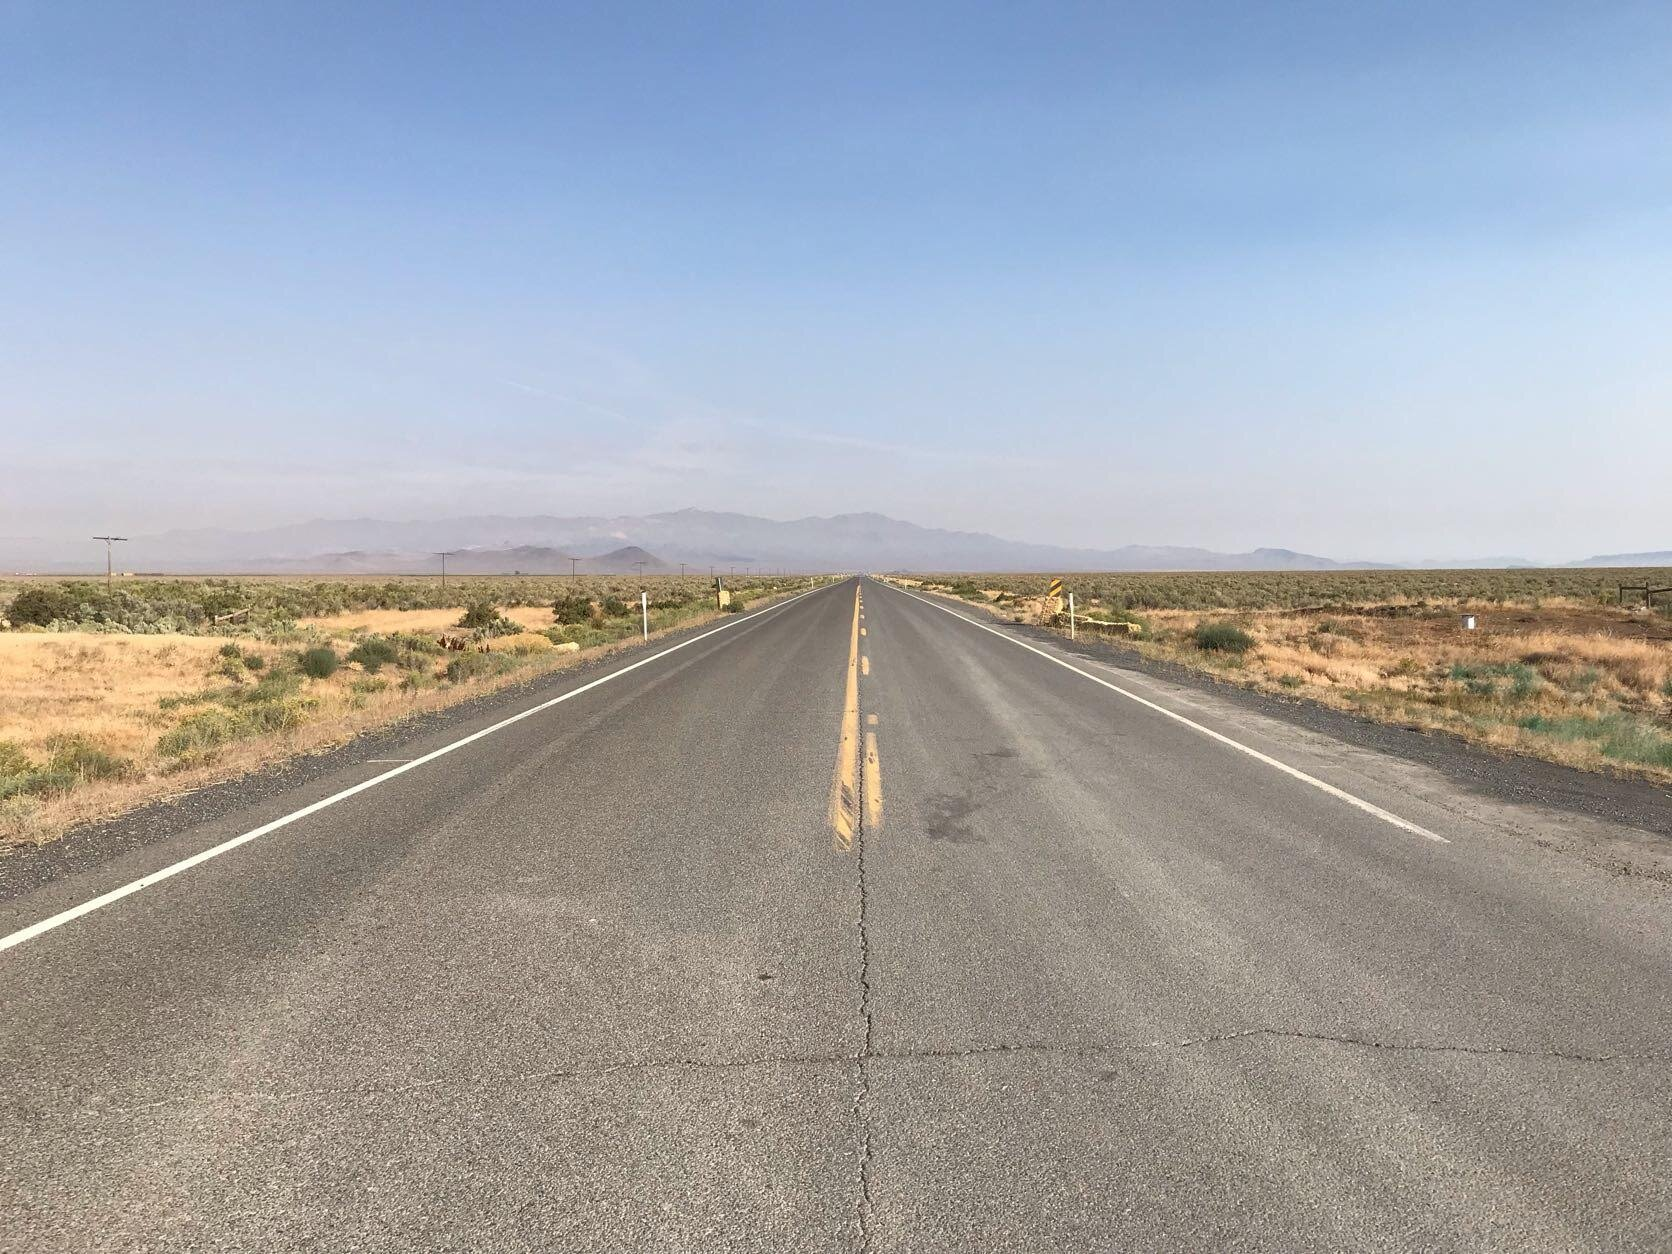 View of the road from the 5 mile start